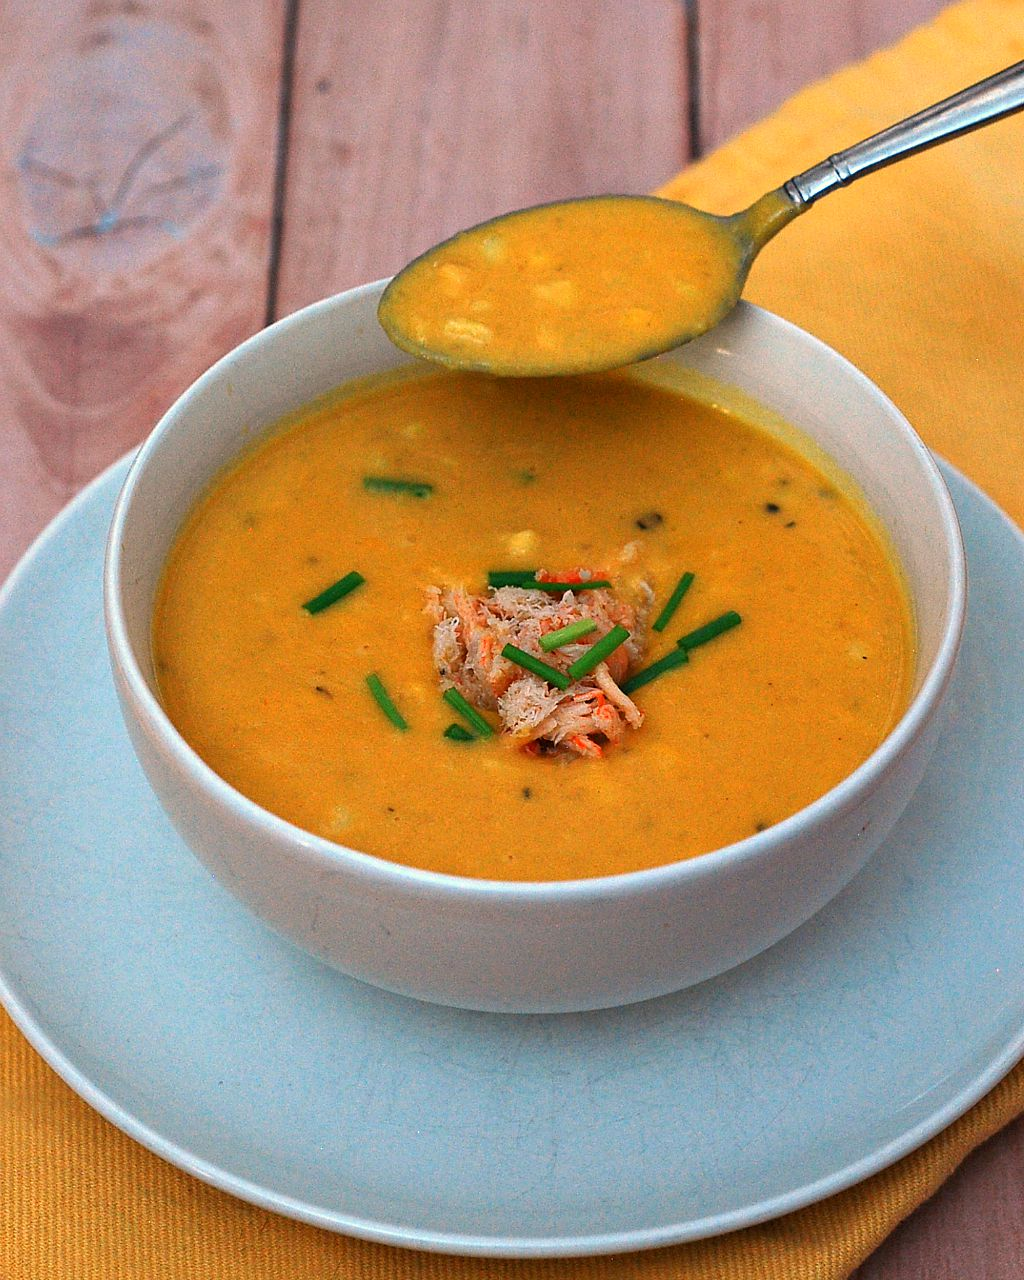 Soup in the summer? Sweet corn shines in this easy, light-but-satisfying summer corn chowder recipe, topped with succulent crabmeat. #SundaySupper TheRedheadBaker.com